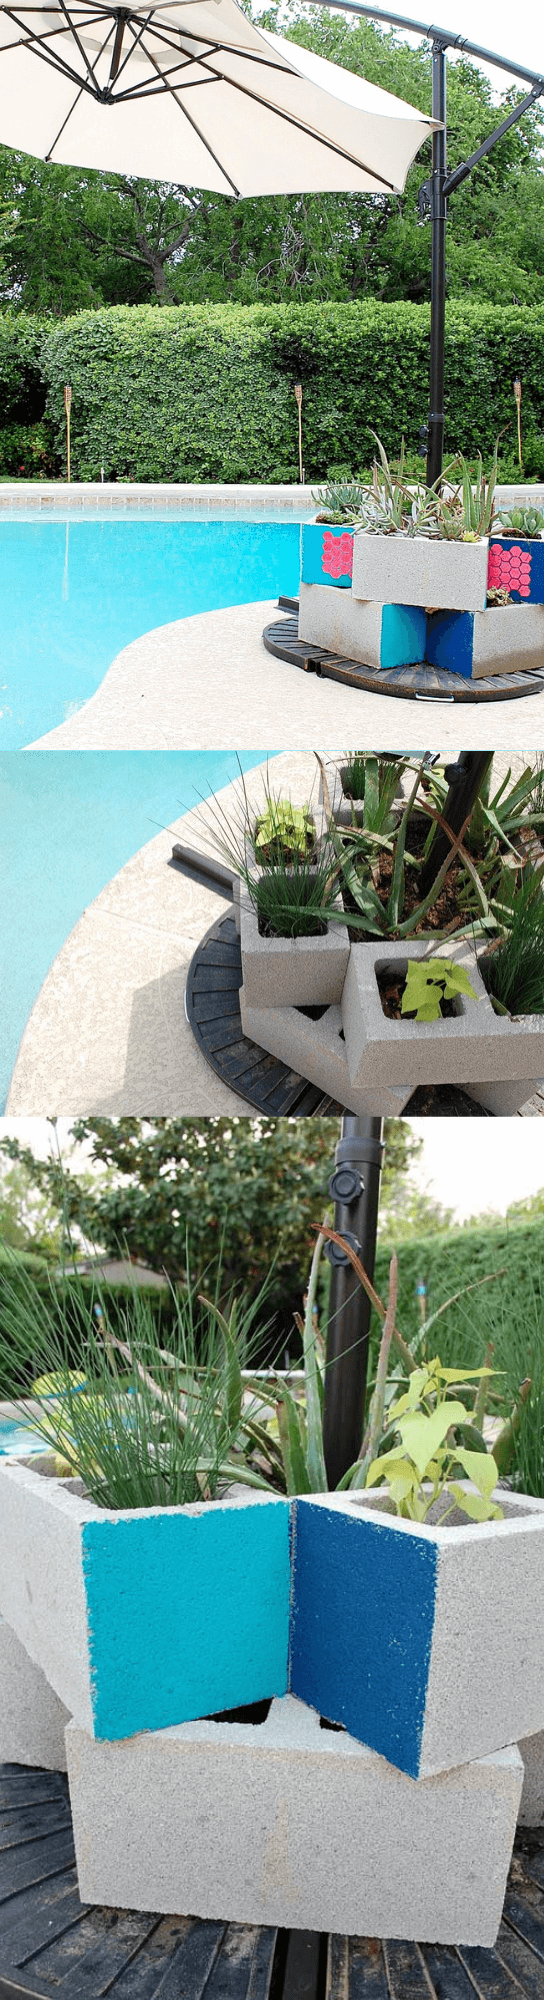 Stenciled Cinder block Pool Umbrella Weight and Planter